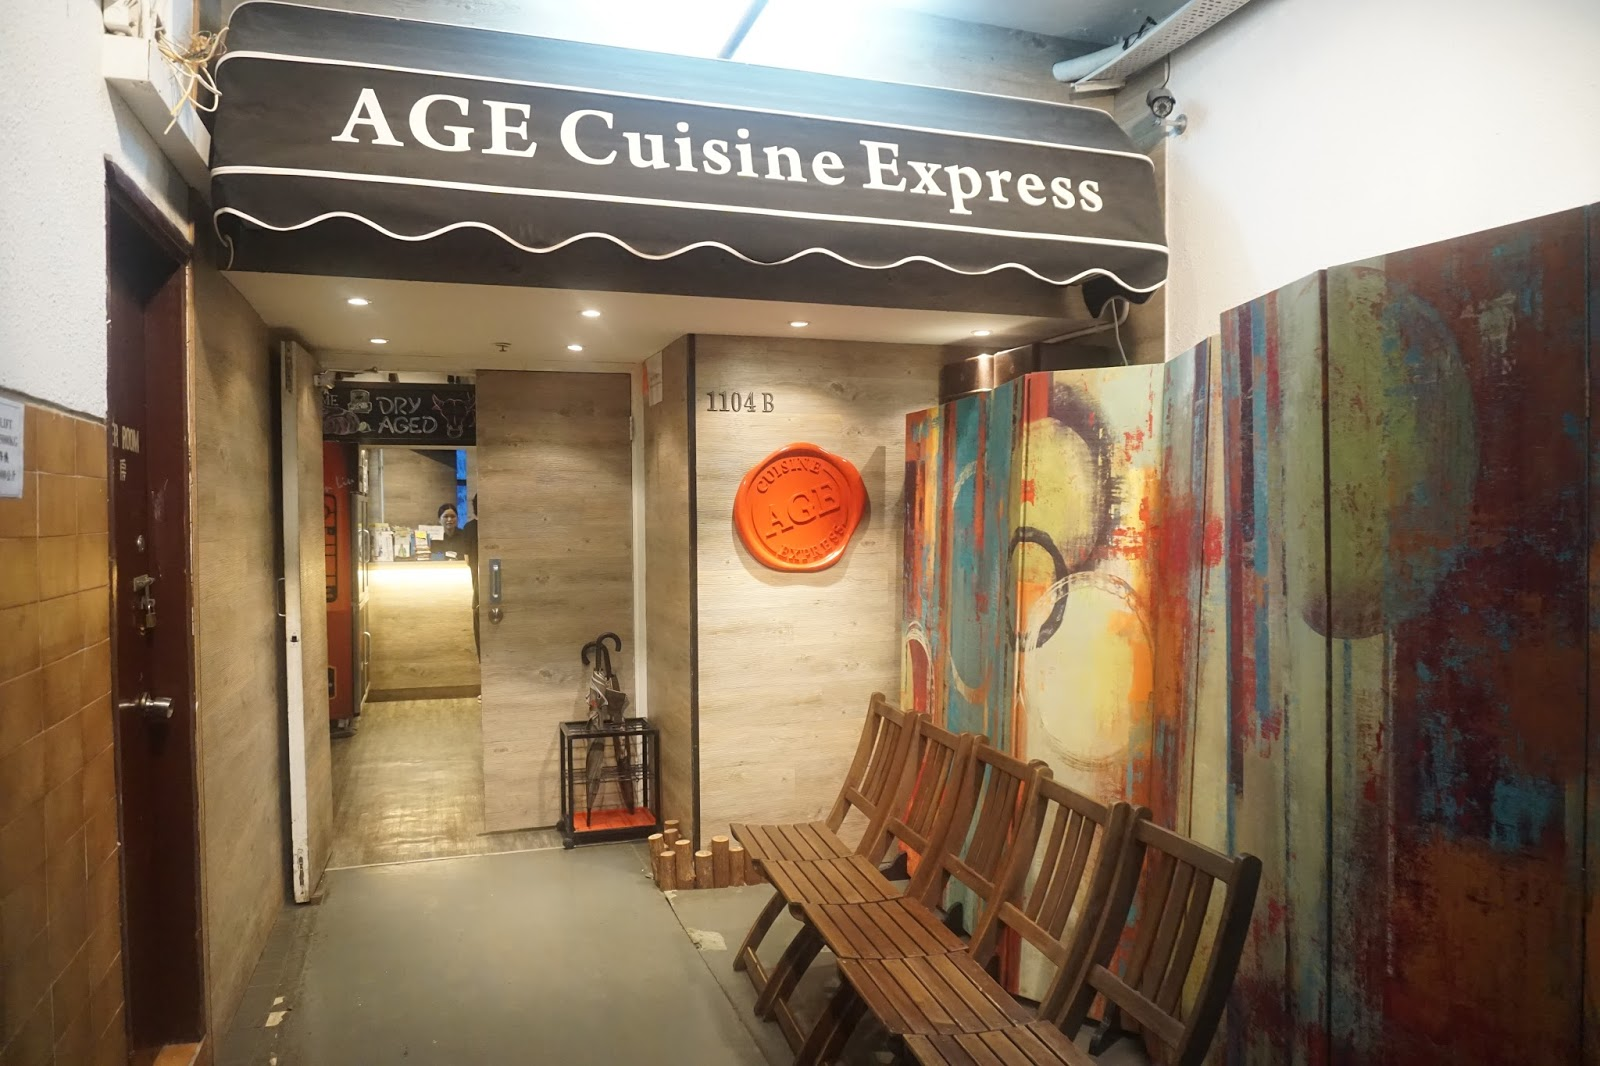 Age cuisine express carmenlovesbeauty u for Age cuisine express